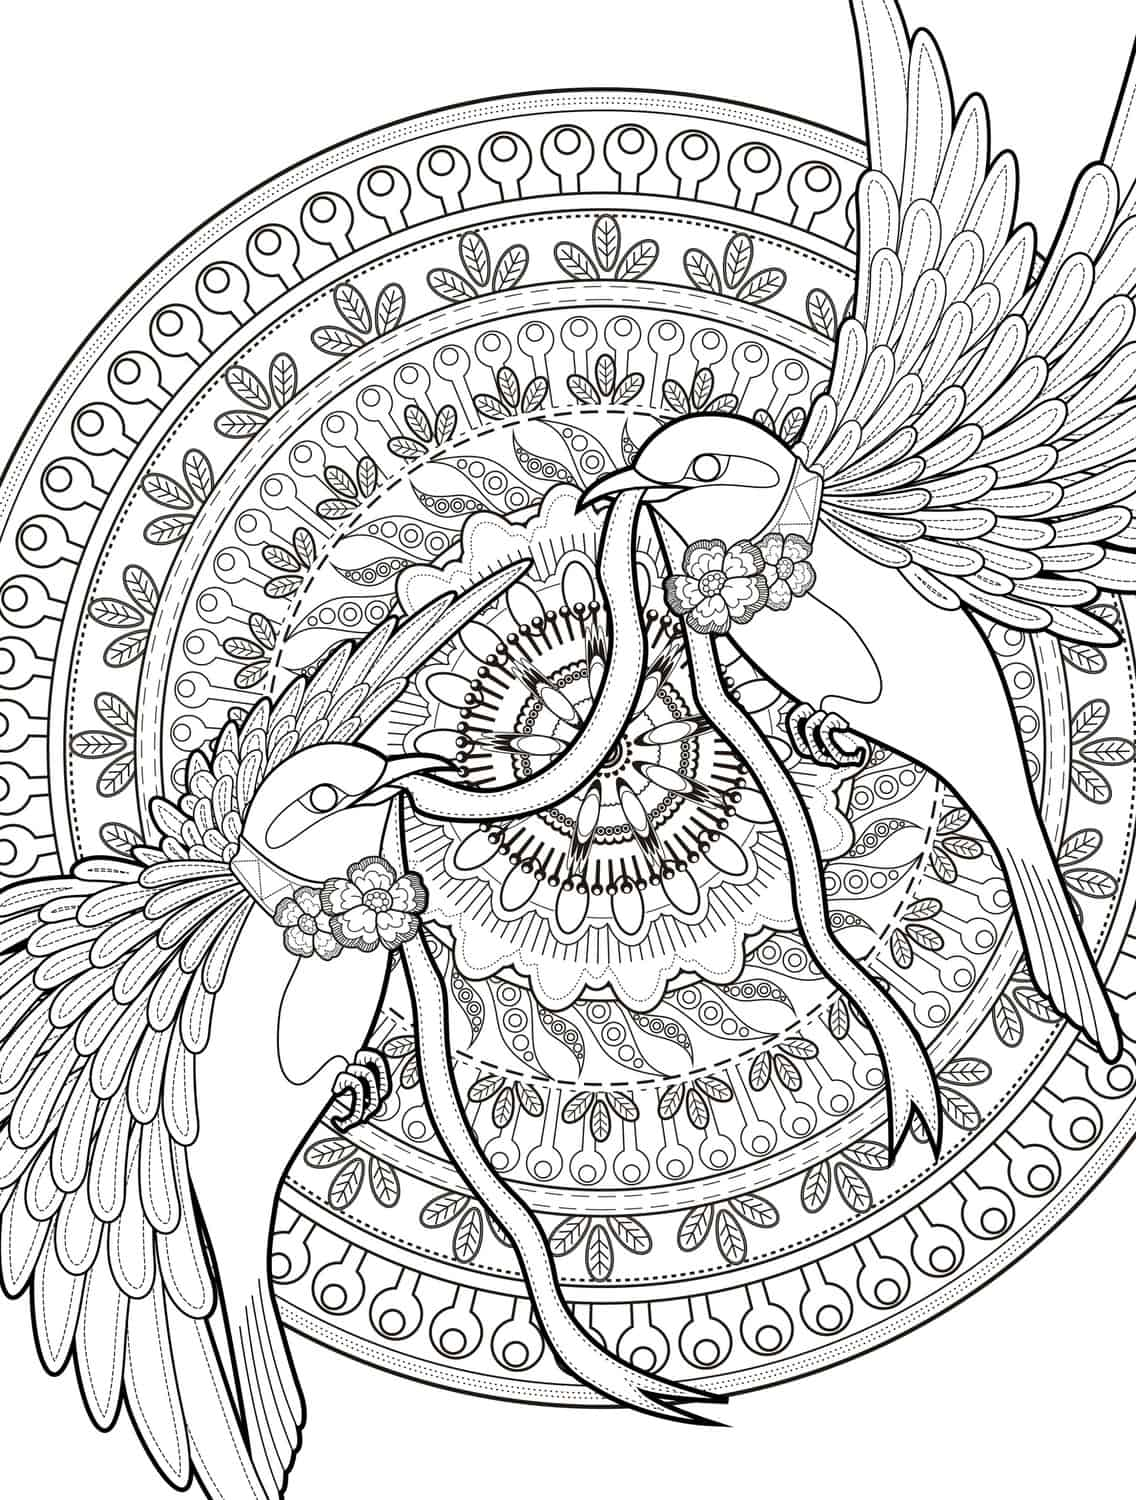 24 More Free Printable Adult Coloring Pages - Page 24 of 25 - Nerdy ...